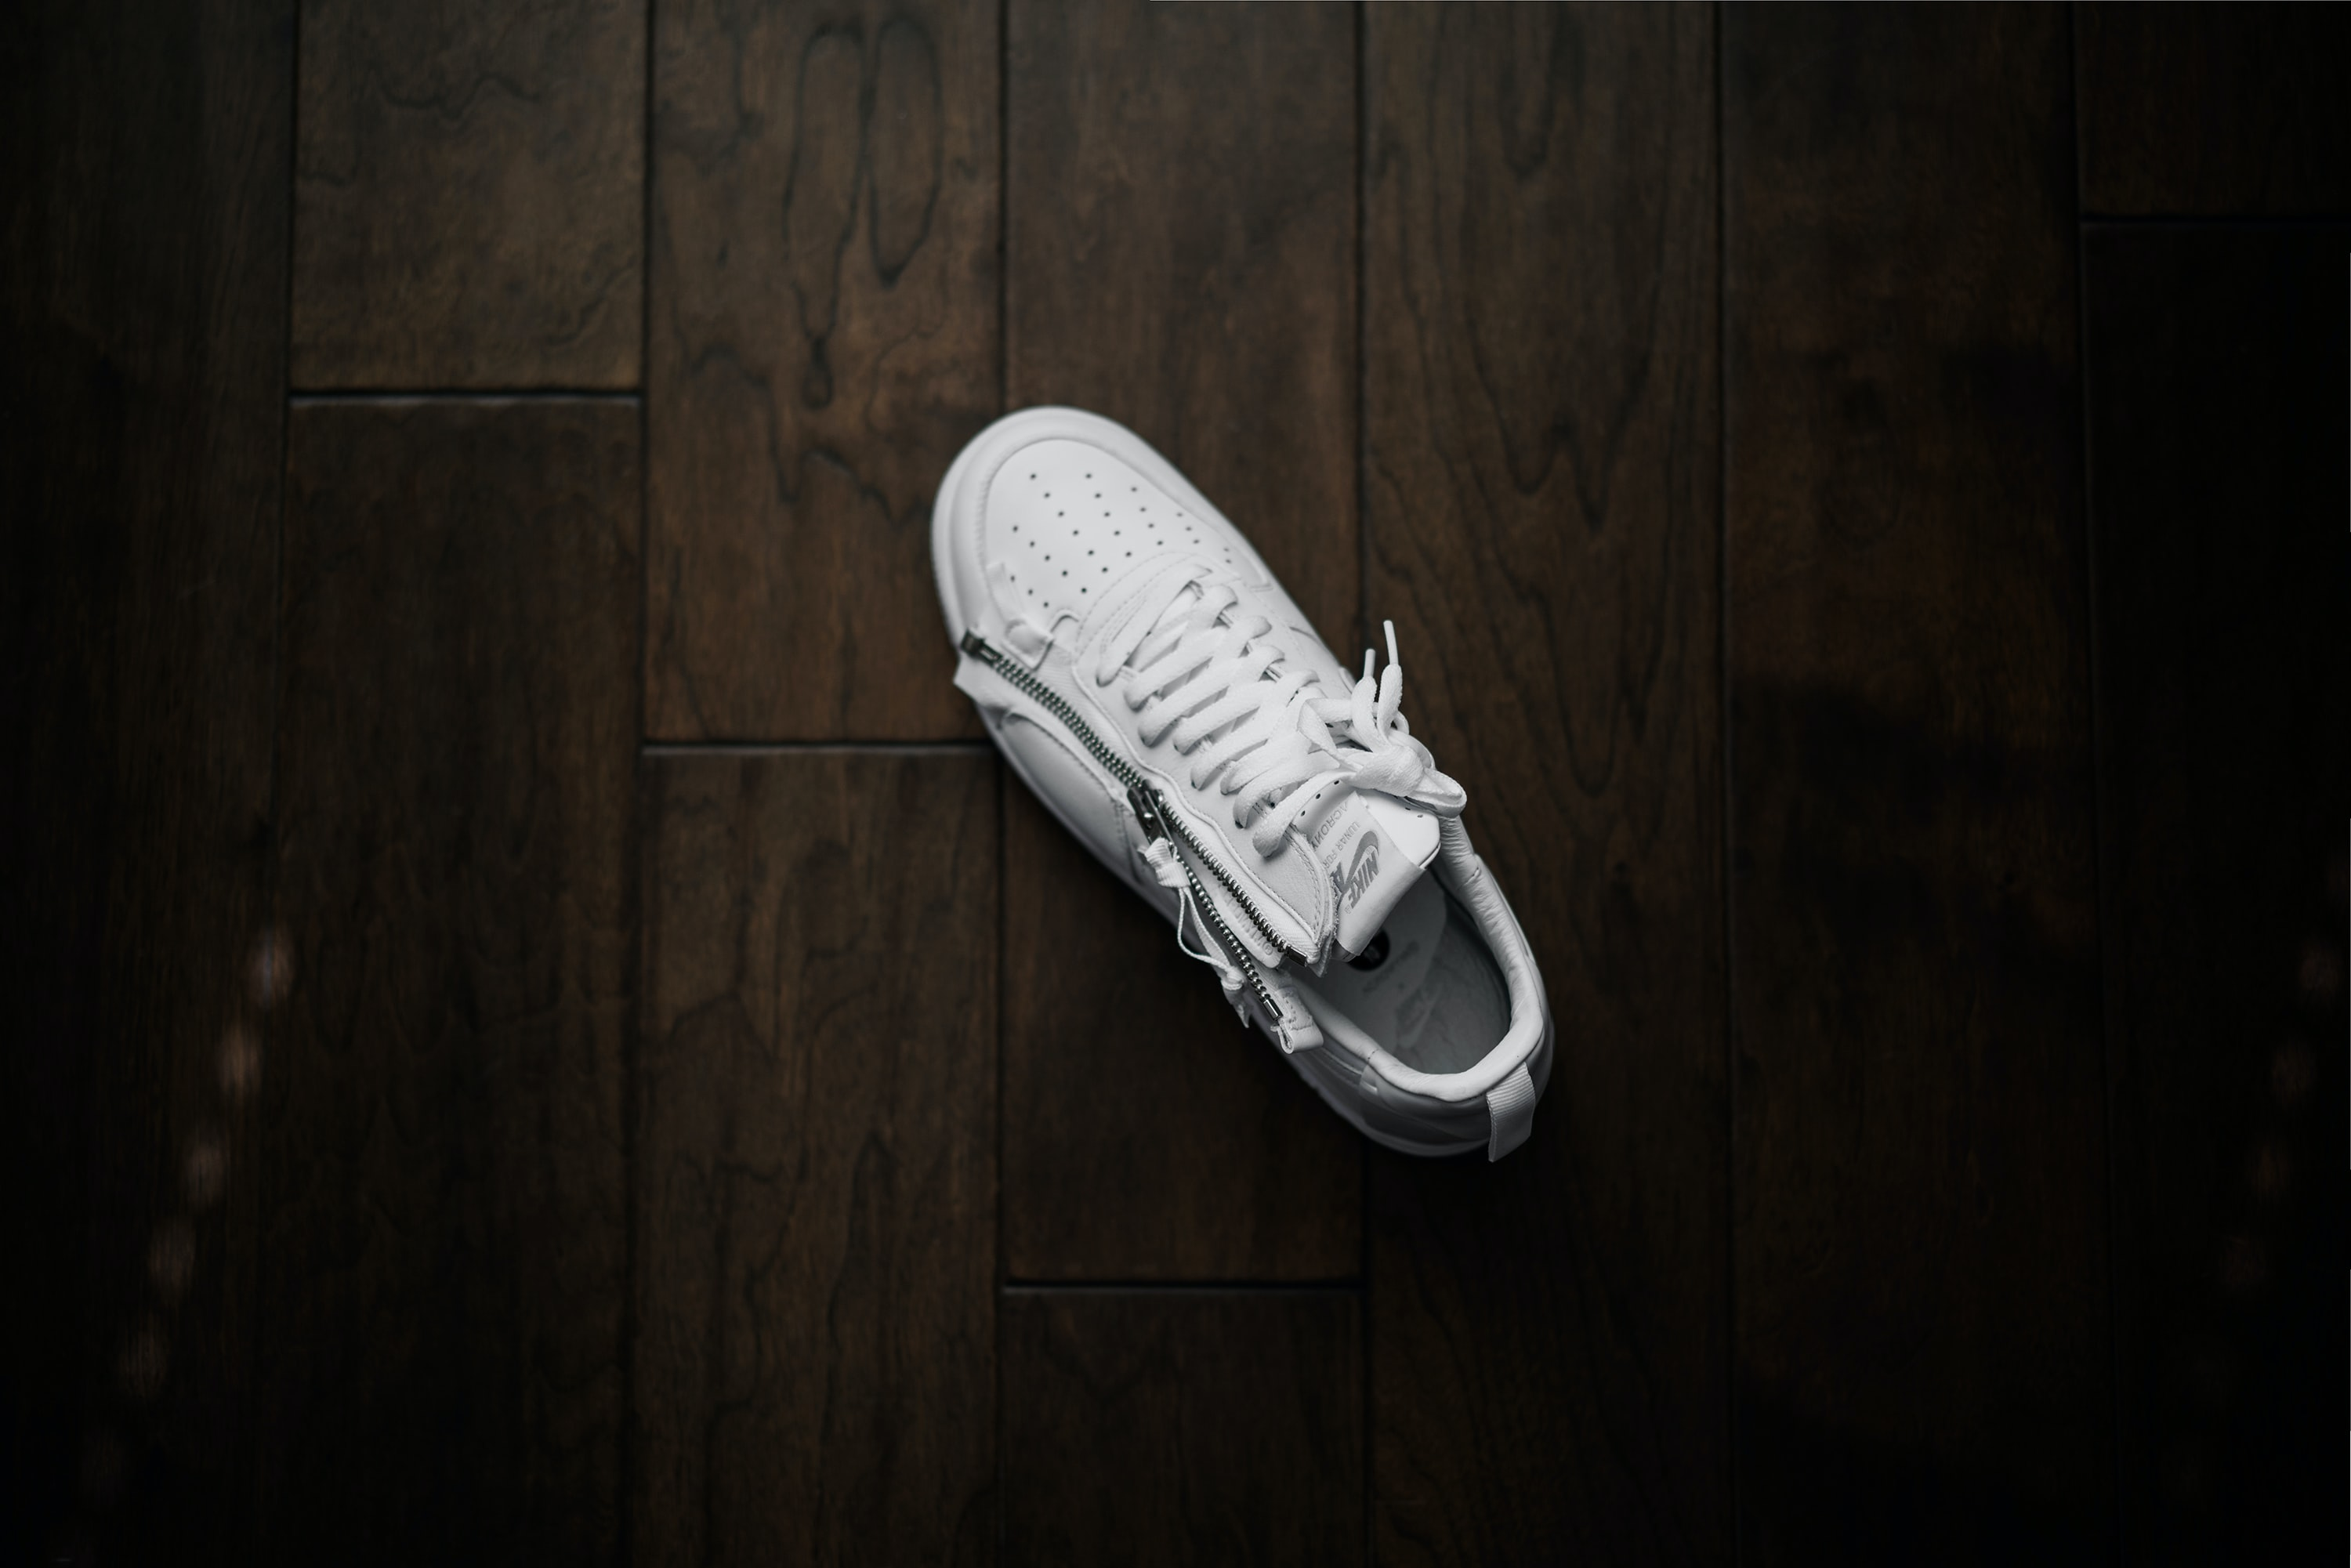 unpaired white Nike low-top sneaker